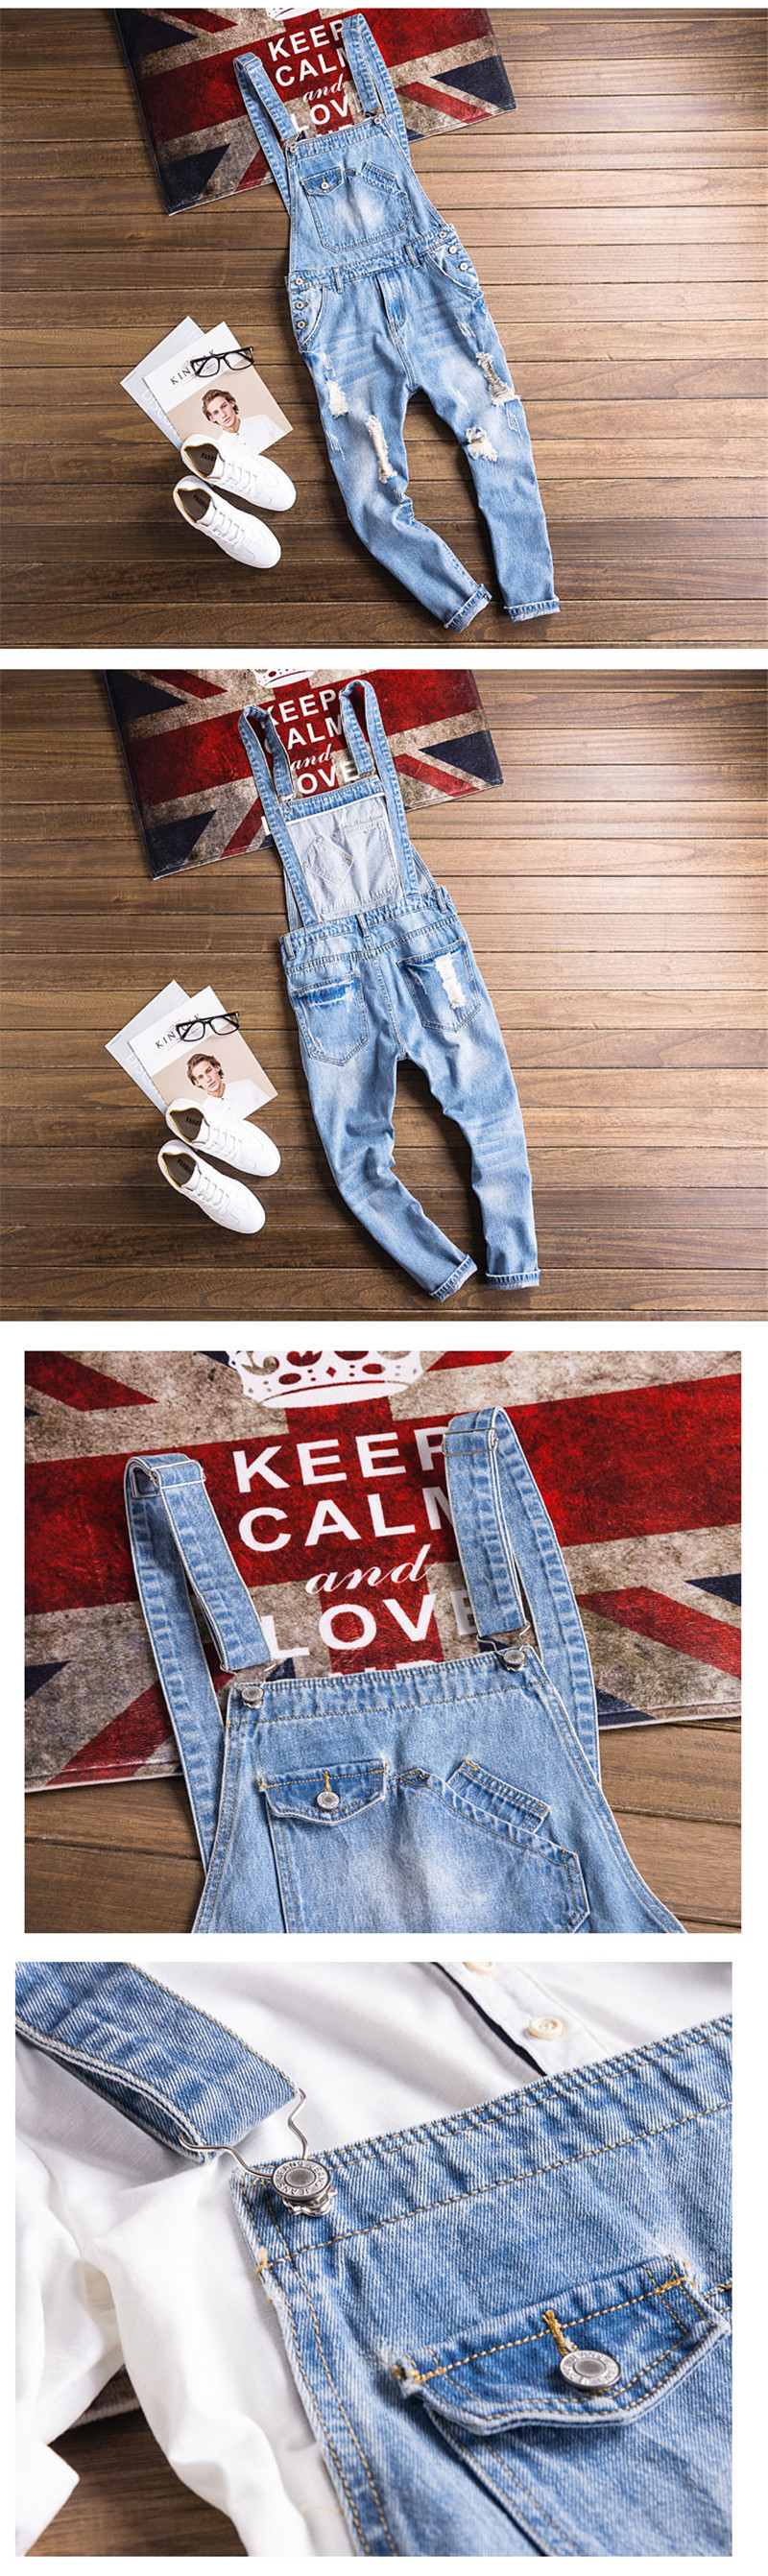 5aa72fb1702 2019 Men S Casual Loose Work Clothes Extra Large 5XL Denim Overalls ...